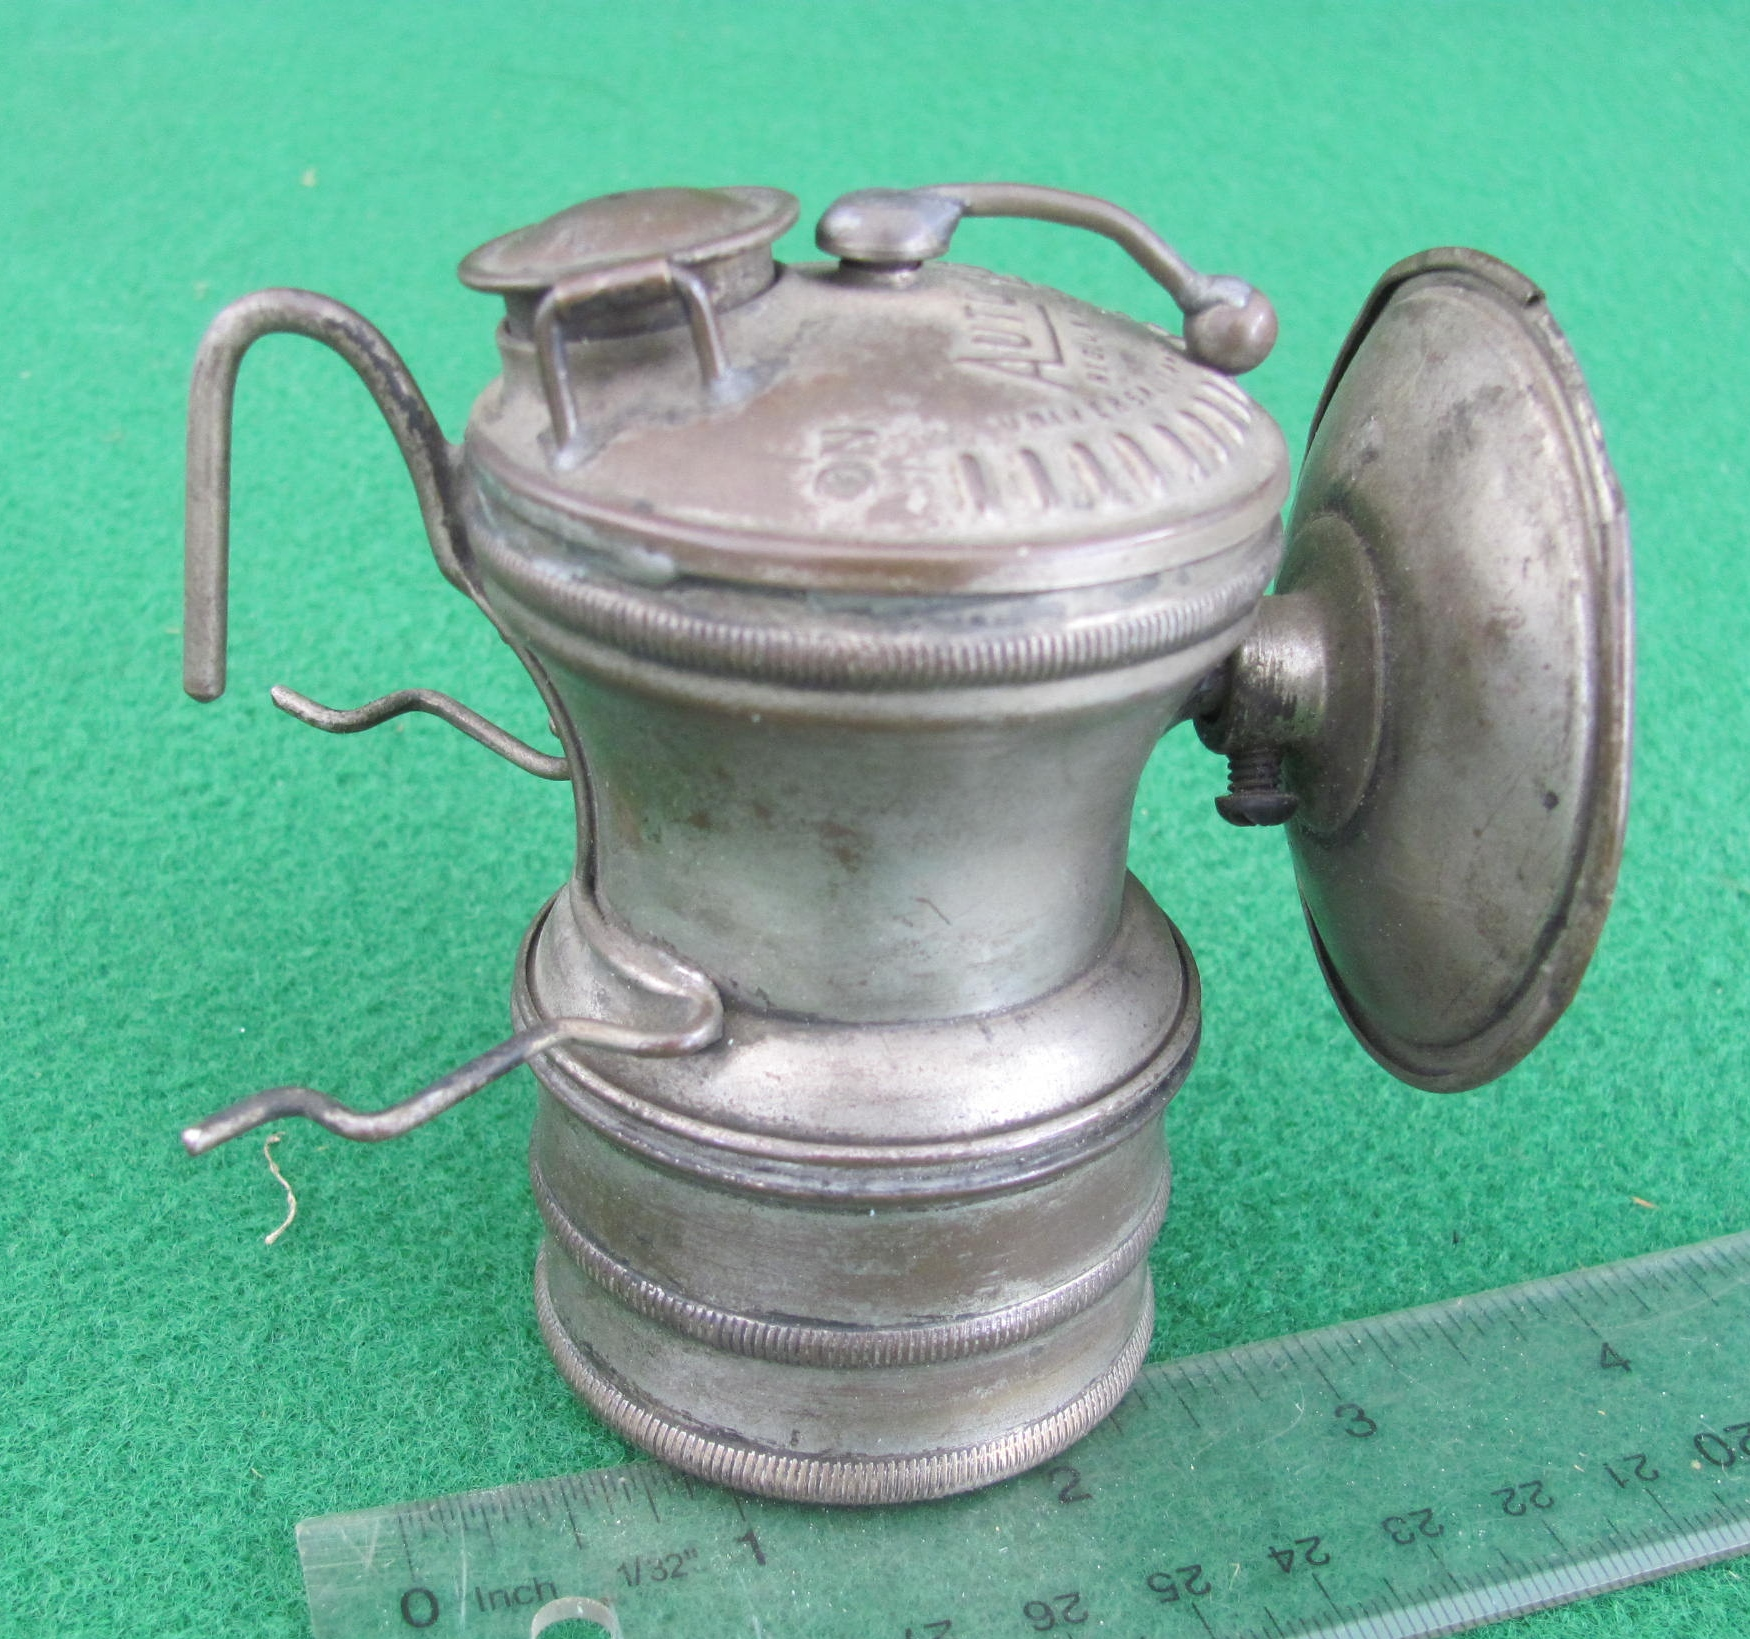 Autolite Nickeled Carbide Lamp